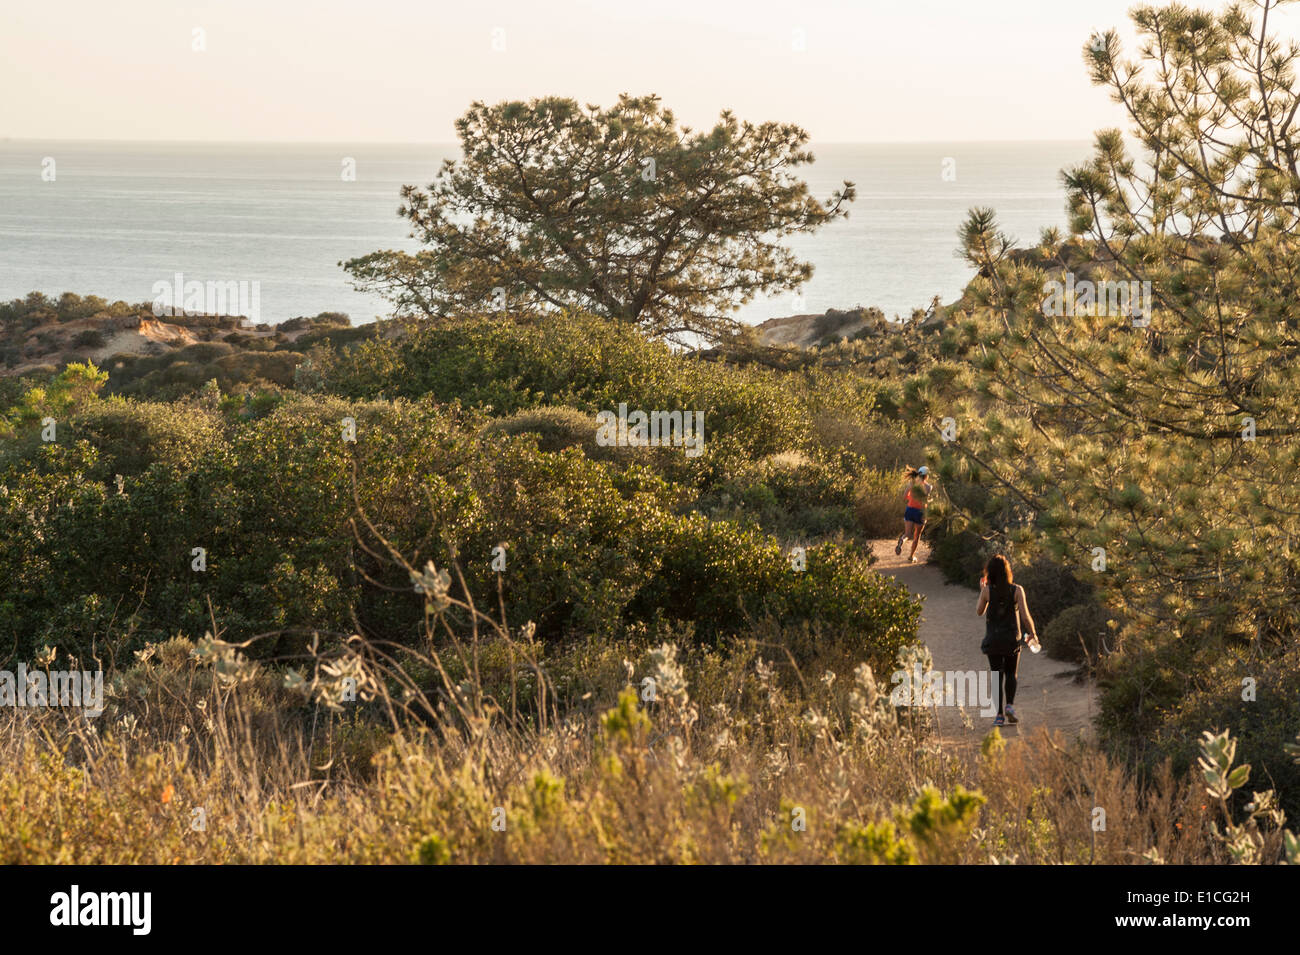 Joggers on trails at Torrey Pines State Park, La Jolla California - Stock Image